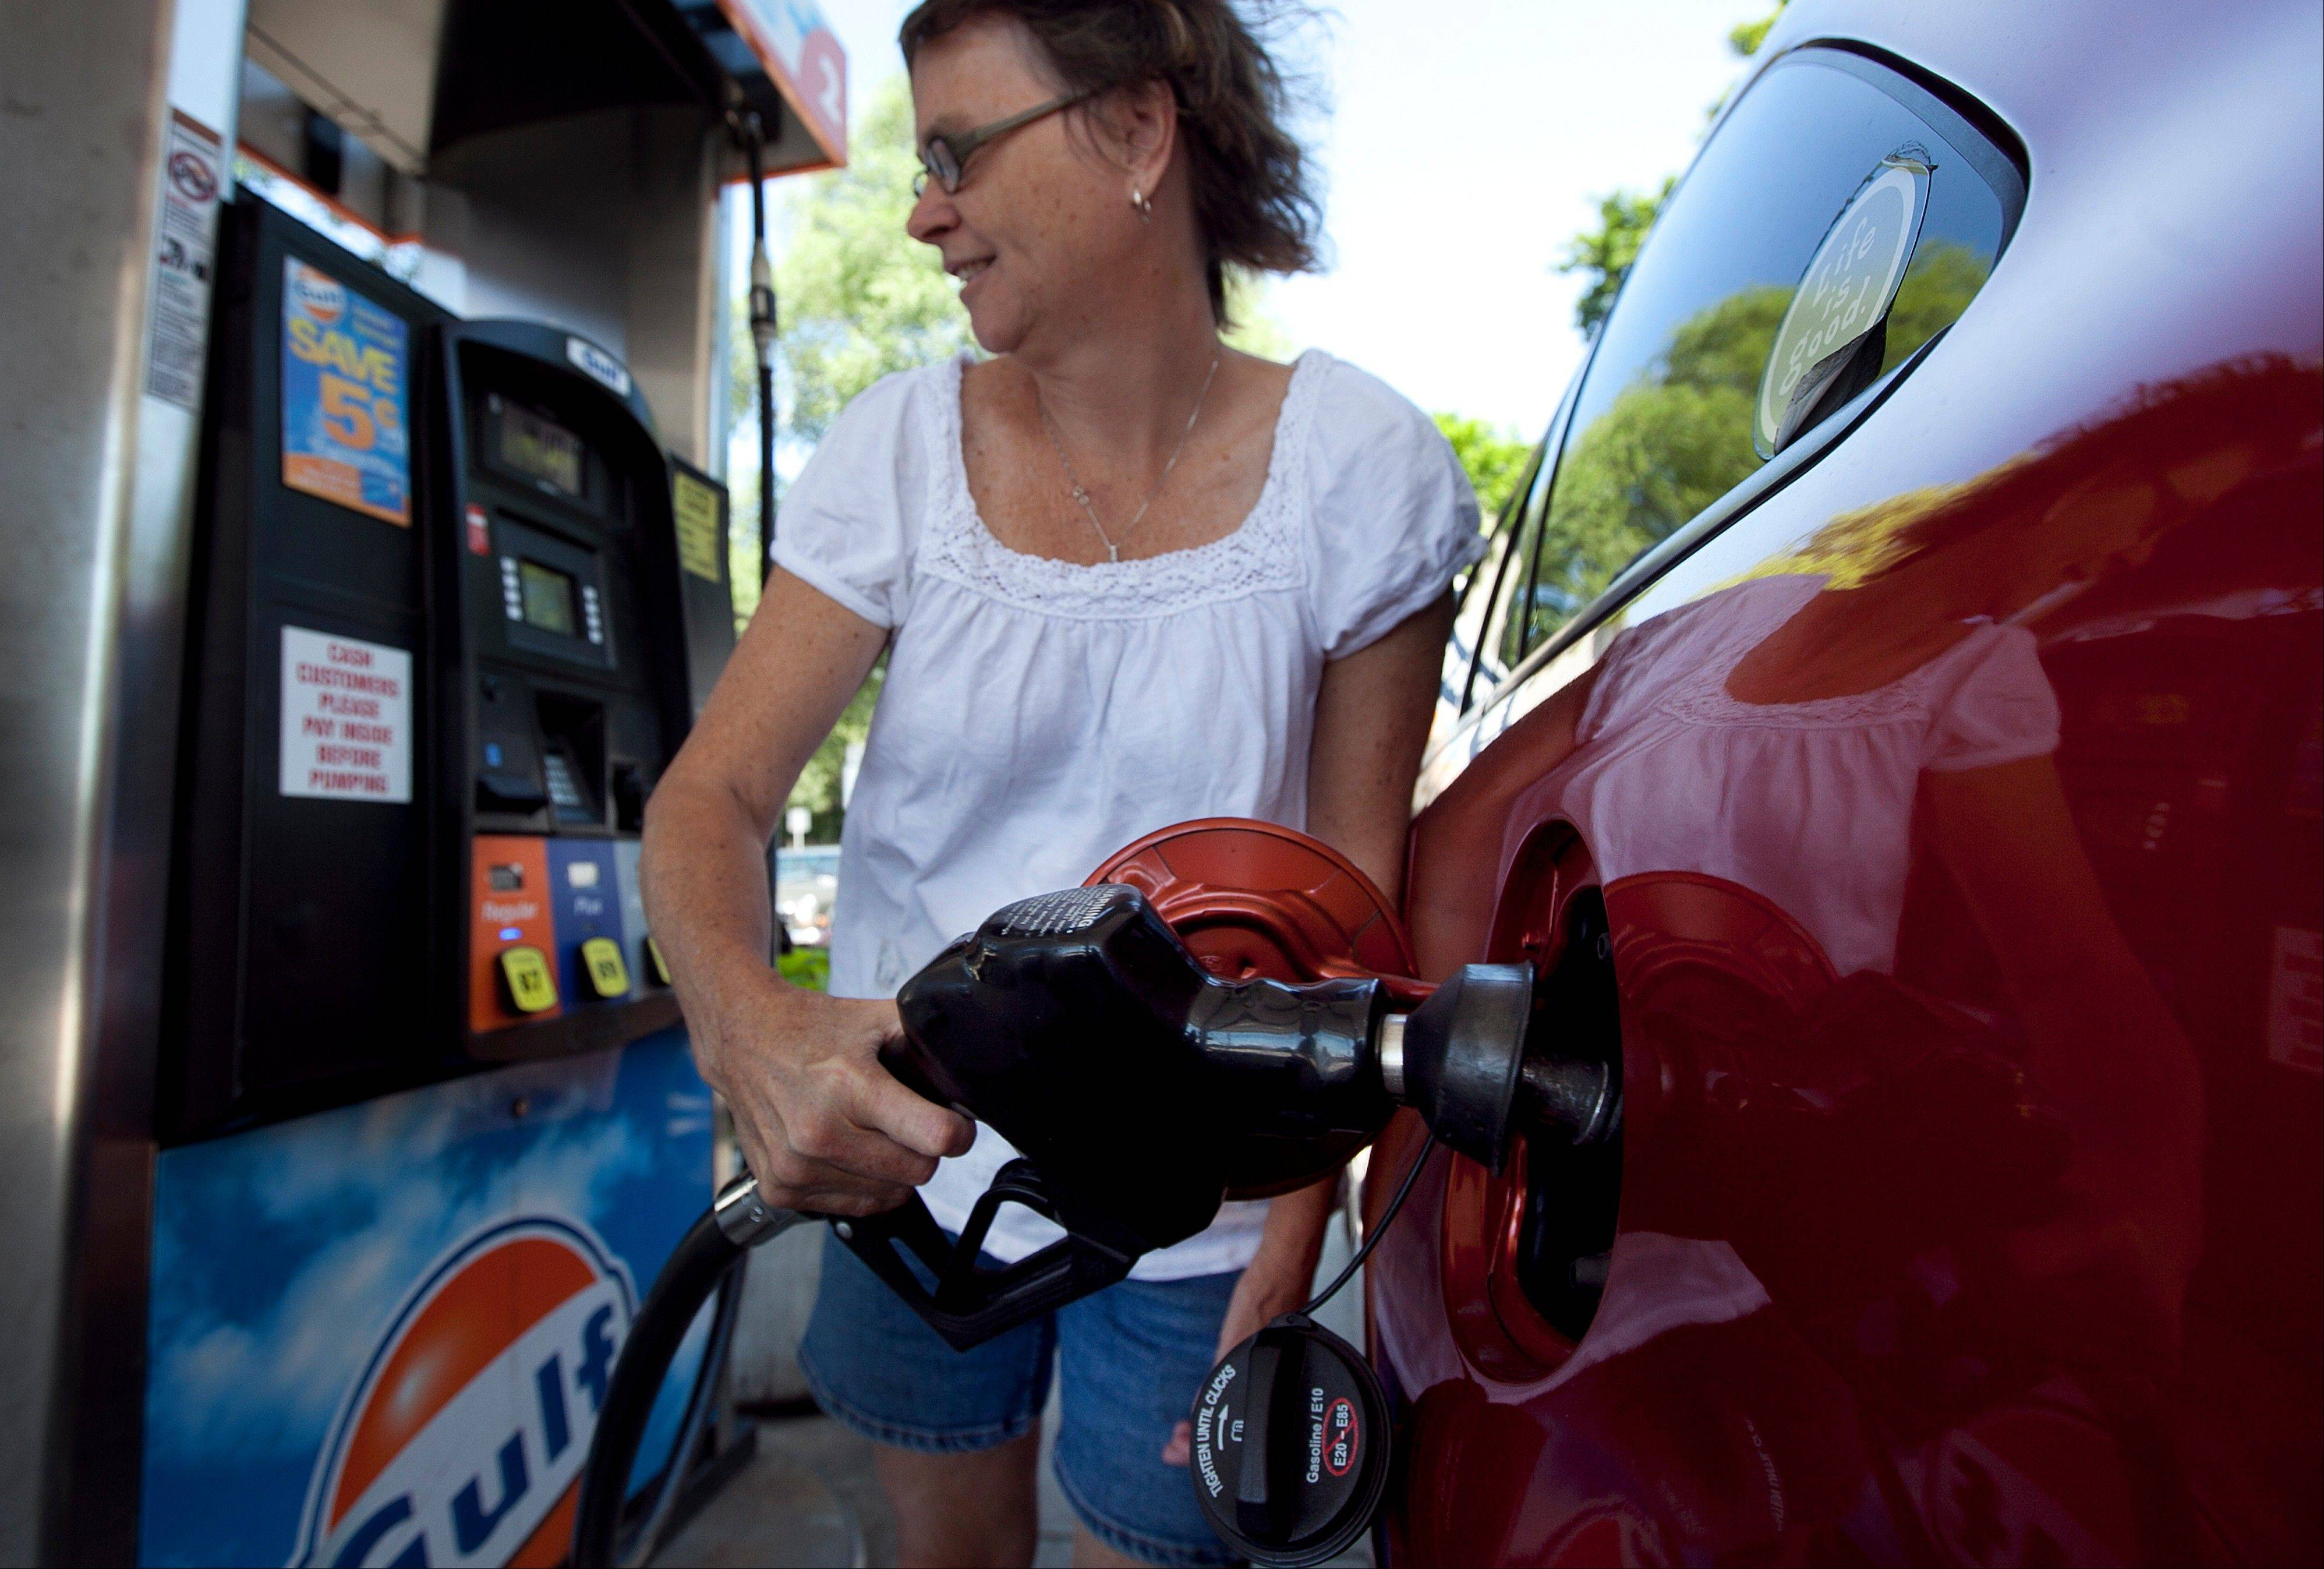 Suzanne Meredith of Walpole, Mass., gases up her car at a Gulf station in Brookline, Mass. Reducing sulfur in gasoline and tightening emissions standards on cars beginning in 2017, as the Obama administration is proposing, would come with costs as well as rewards.